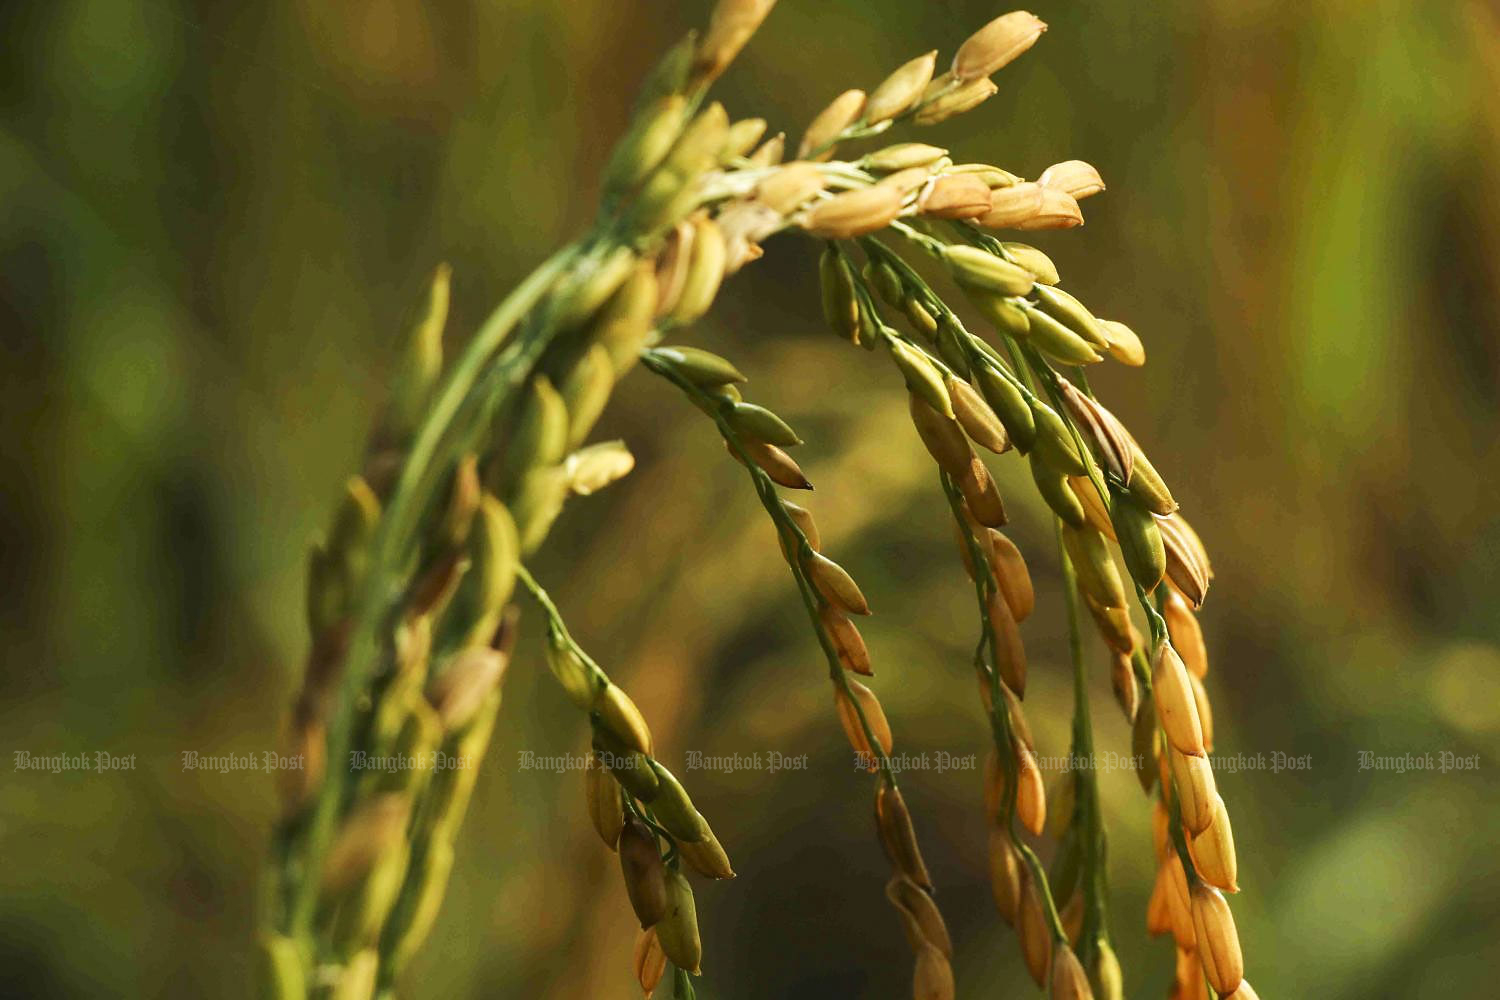 Thai rice exports currently face fierce competition from other countries.